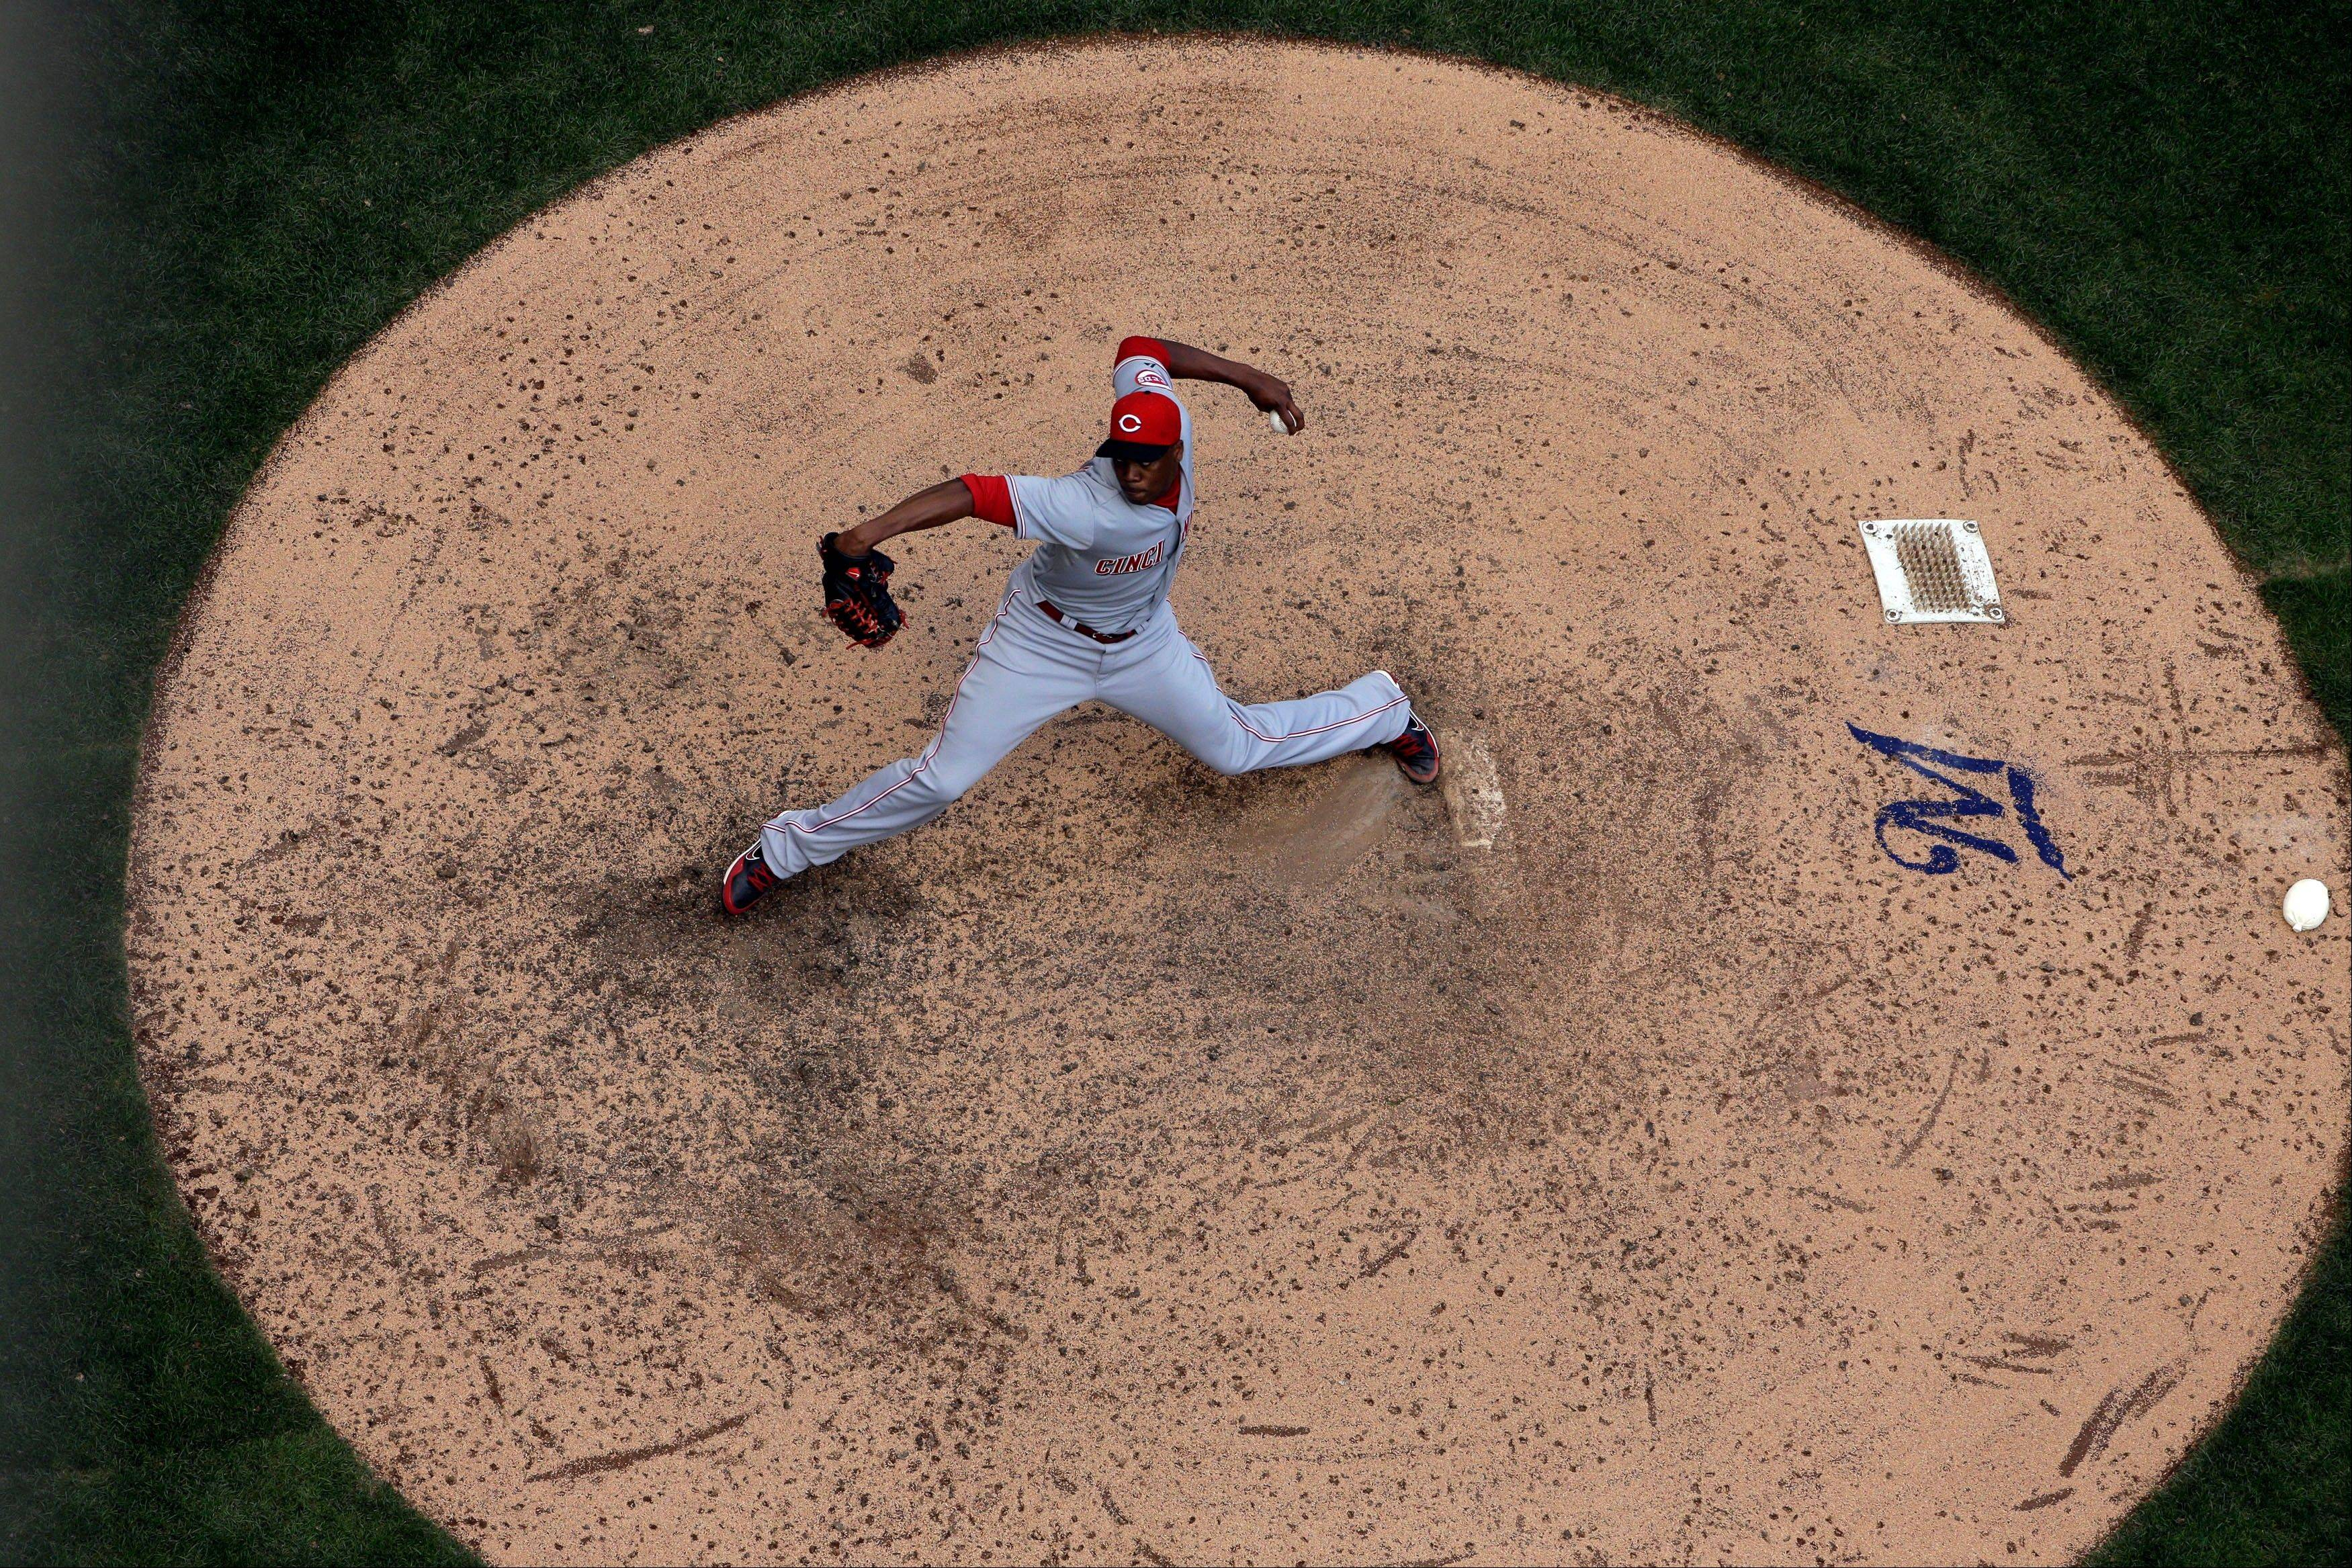 Associated Press/Sept. 14 Cincinnati Reds relief pitcher Aroldis Chapman throws during the eighth inning of a baseball game against the Milwaukee Brewers, in Milwaukee. The fireballer from Holguin, Cuba, who defected in 2009, threw the fastest pitch on record at 105 mph and saved 38 games for Cincinnati this season.